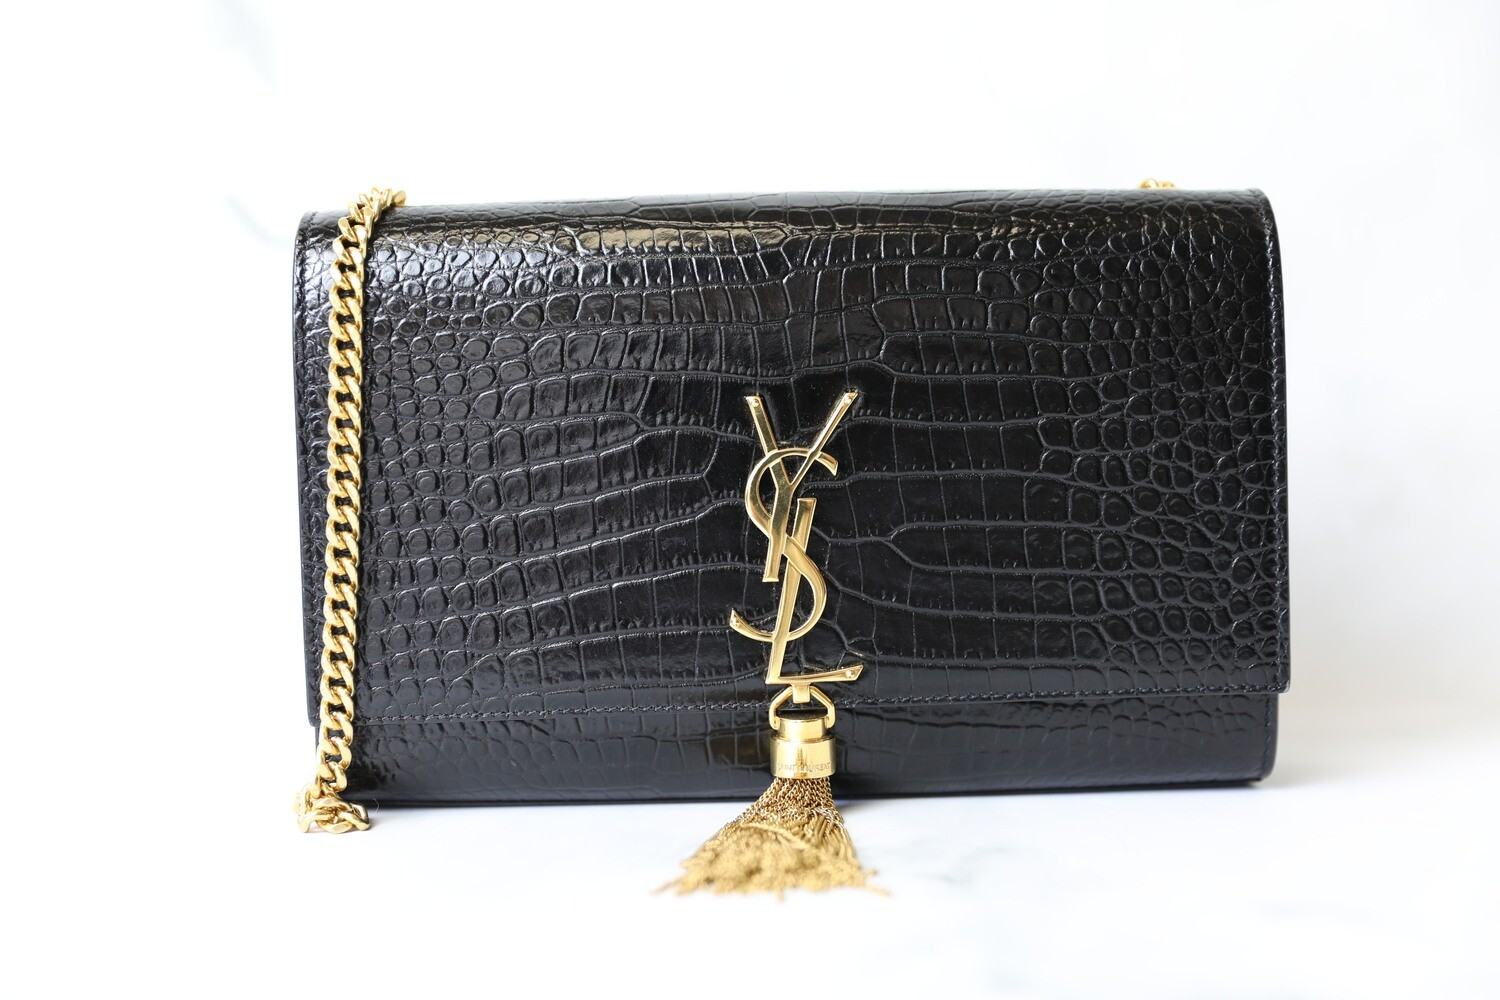 Saint Laurent Kate with Tassel, Black Mock Croc with Gold Hardware, Preowned in Dustbag WA001